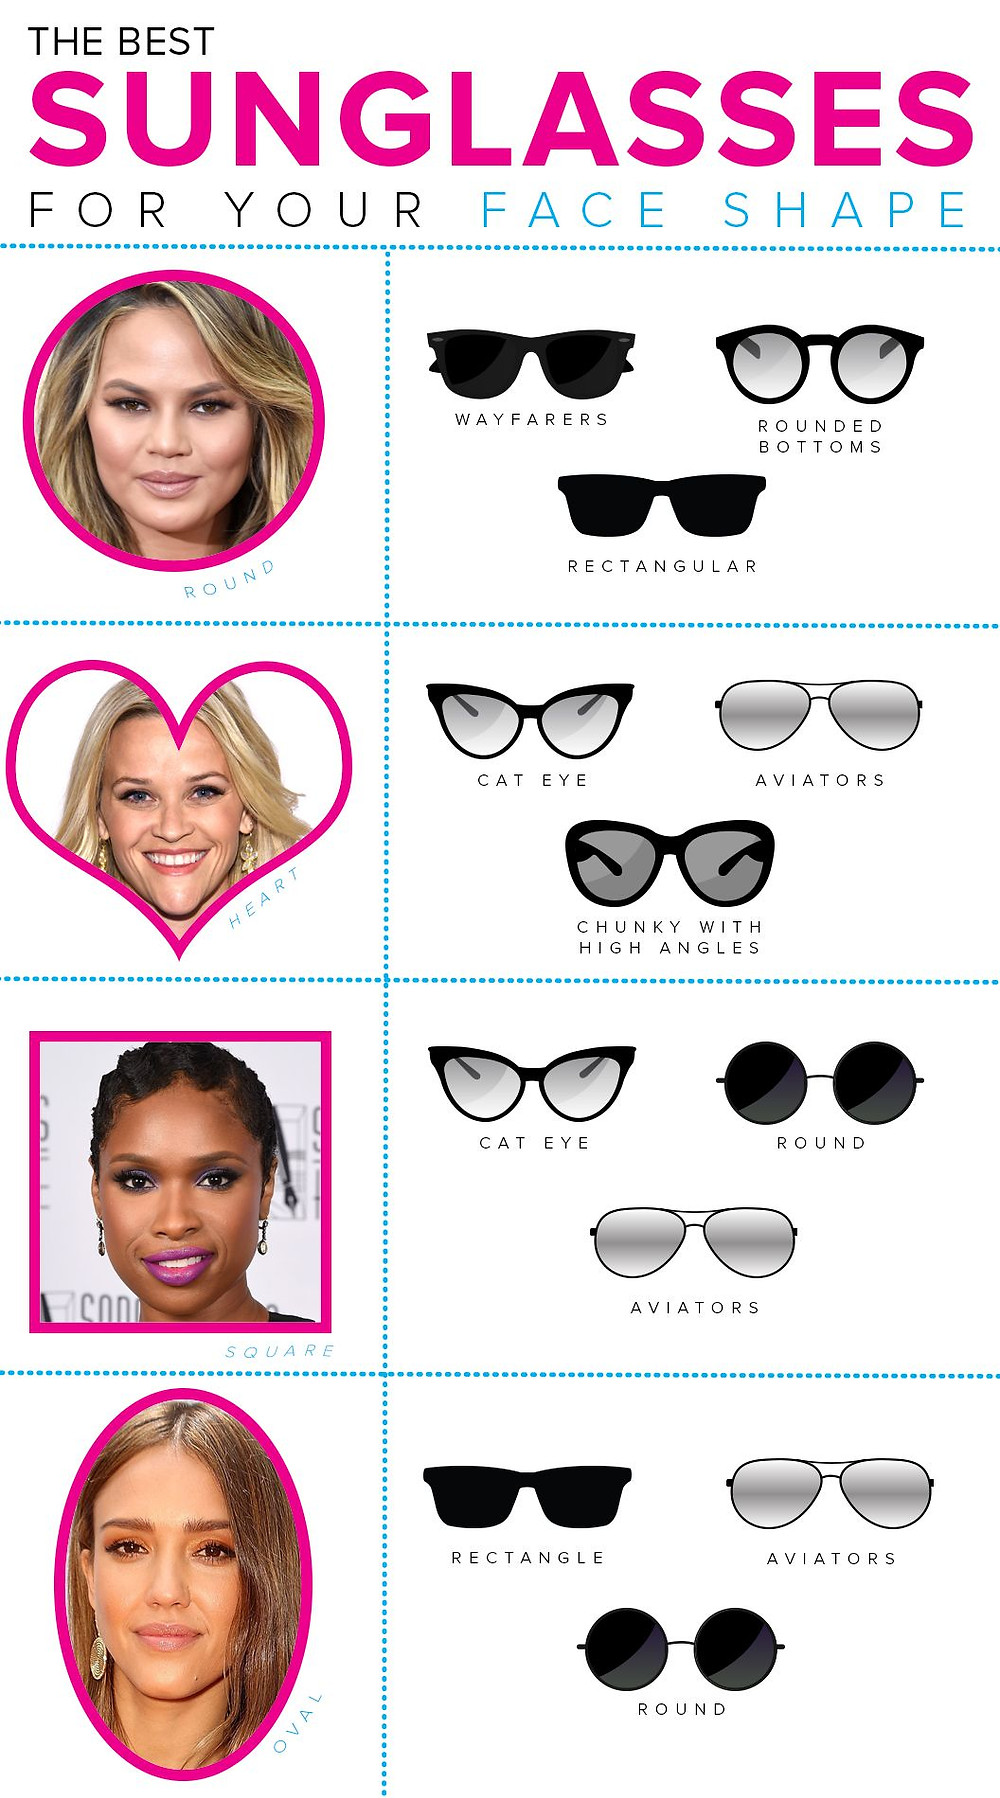 How to choose the best pair of sunglasses for my face shape